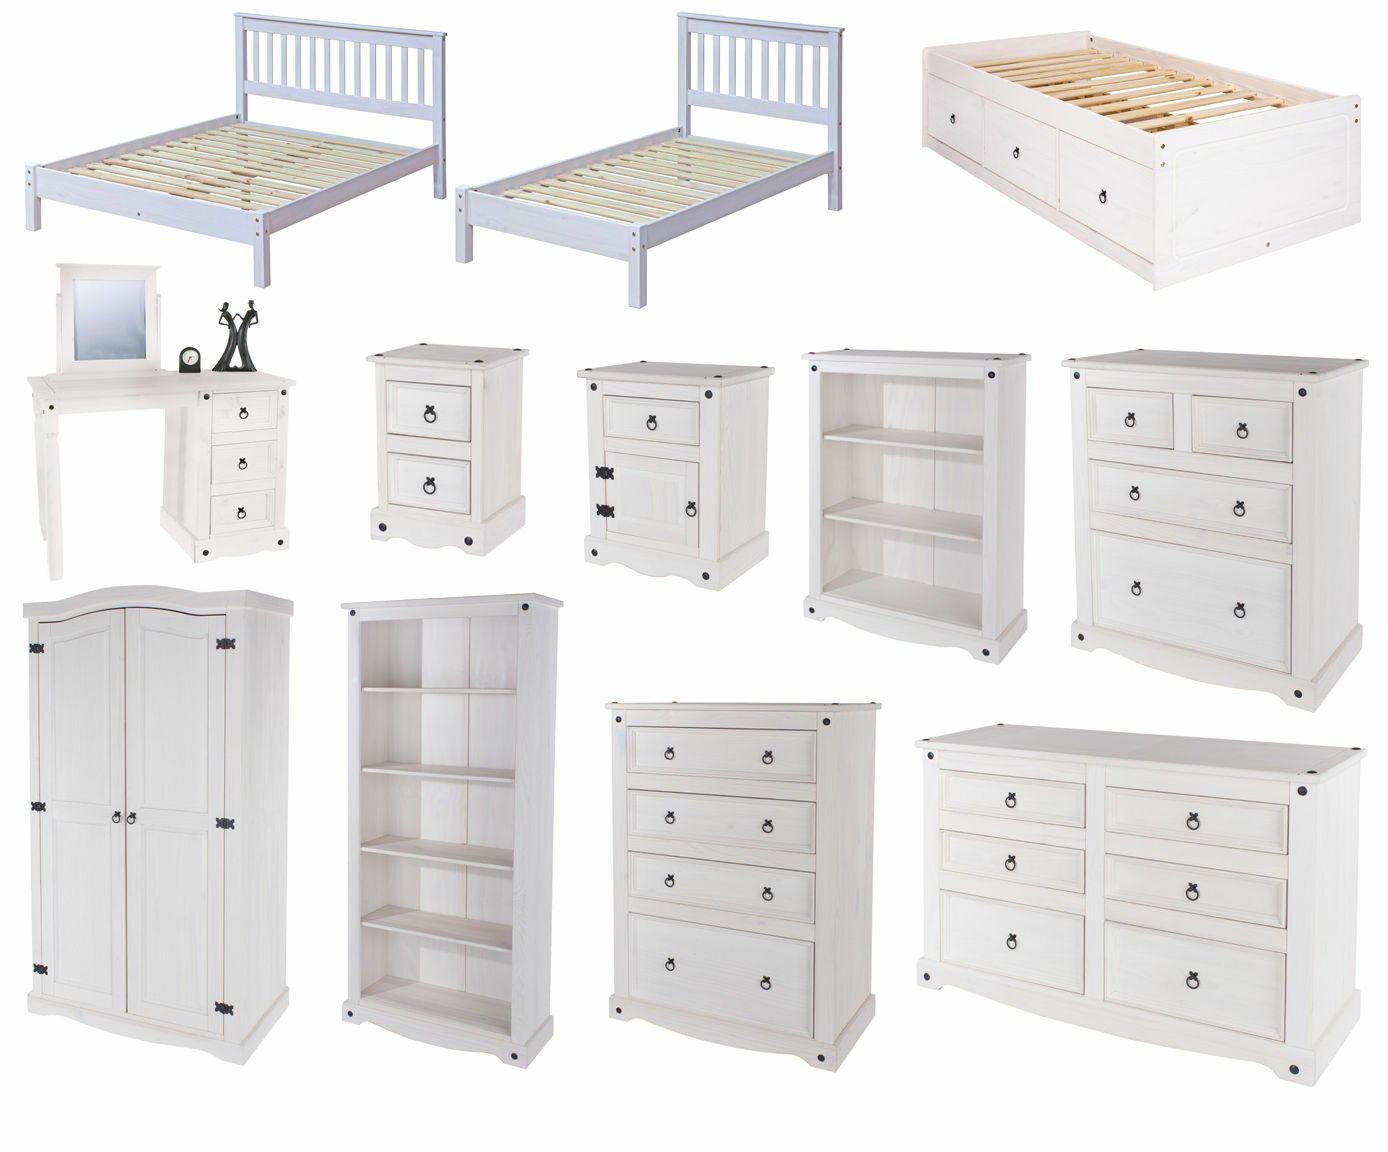 Childrens Bedroom Furniture White Painted Bedroom Furniture